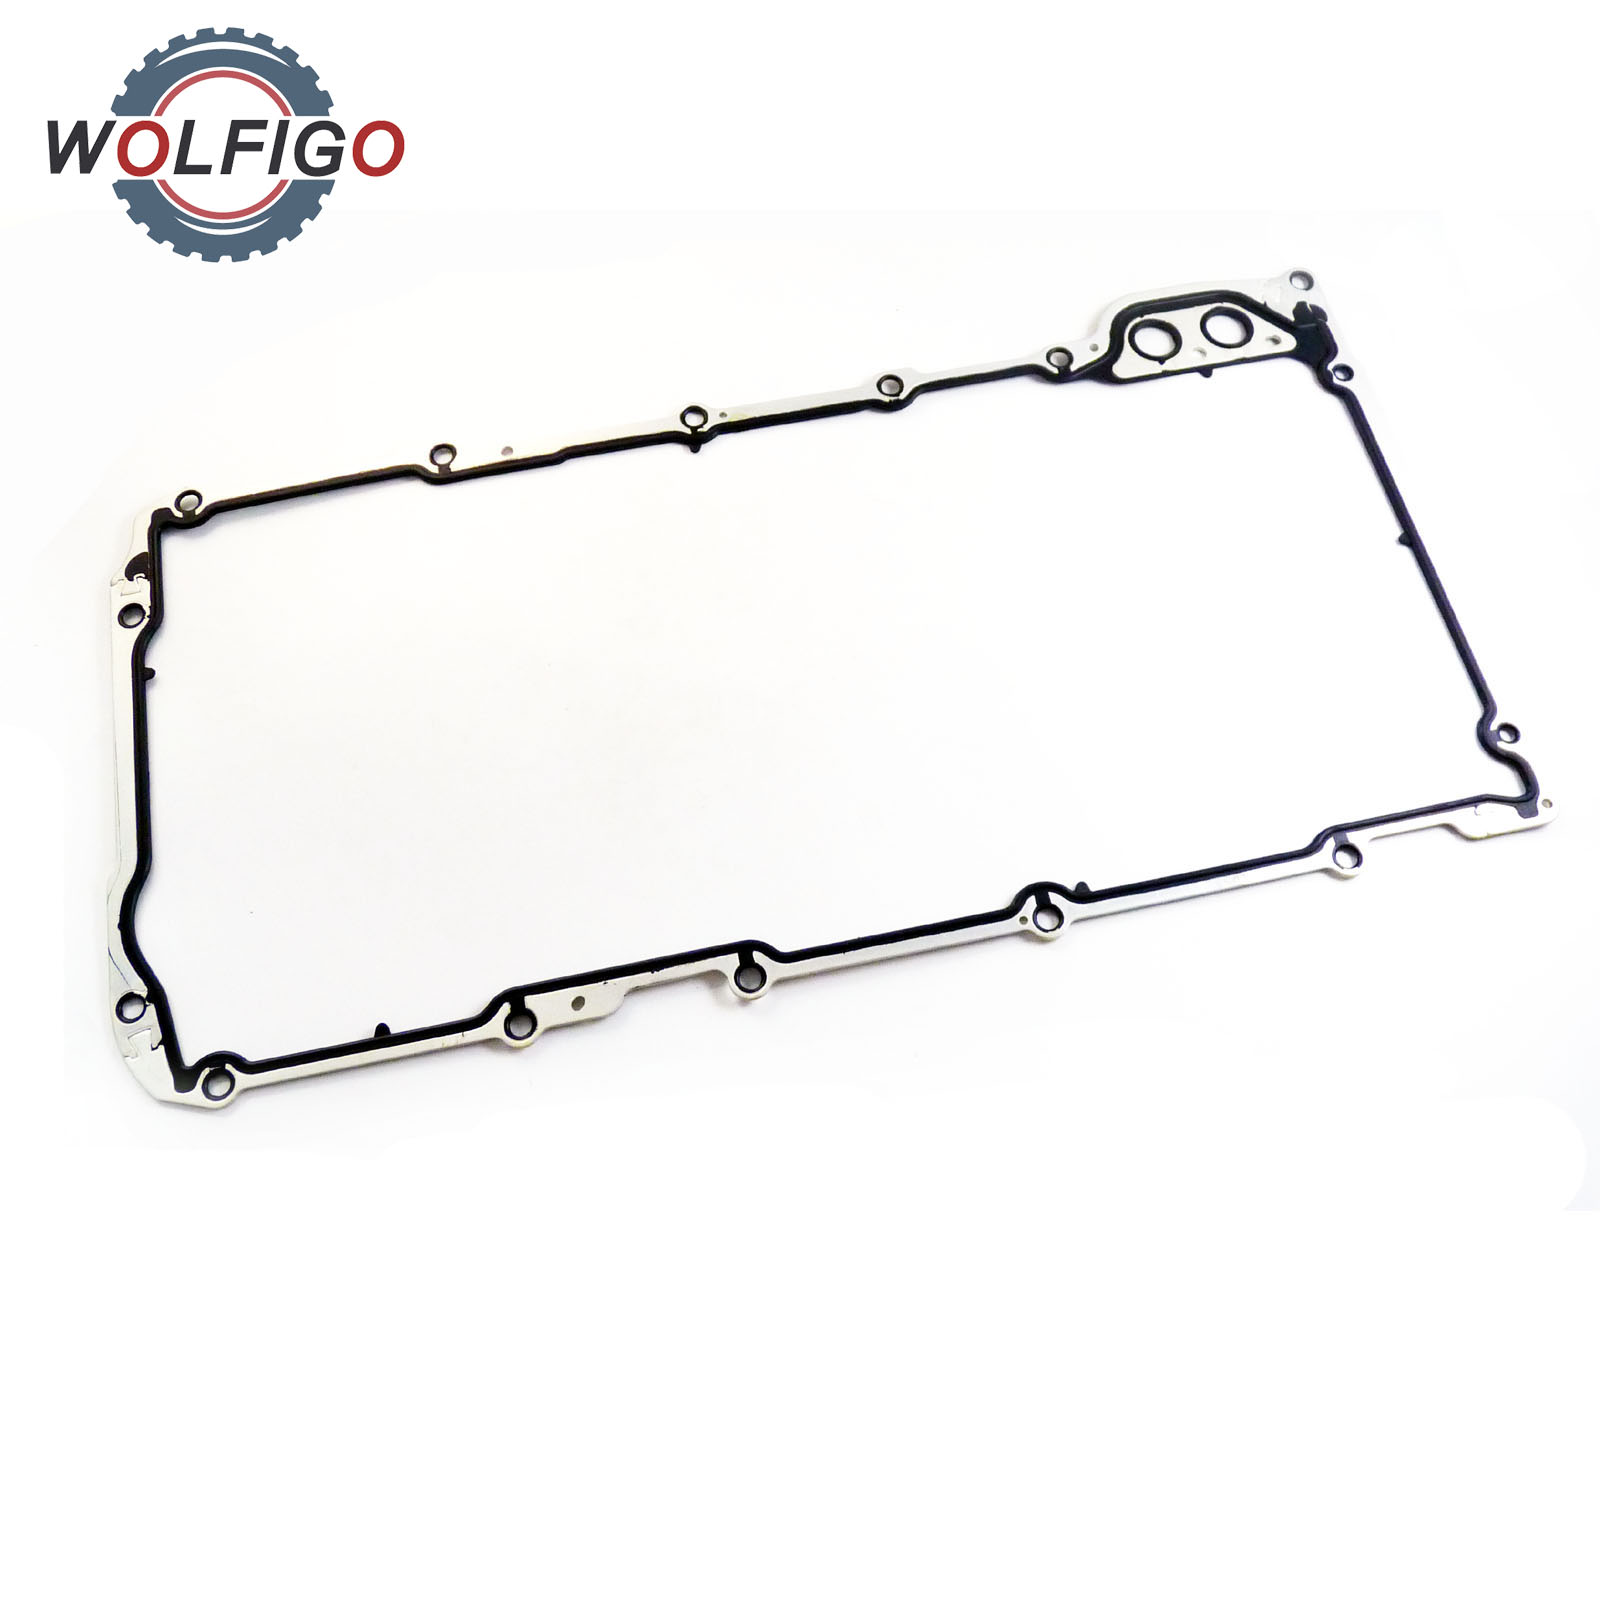 WOLFIGO Engine Oil Pan Gasket 12612350 For BUICK ALLURE